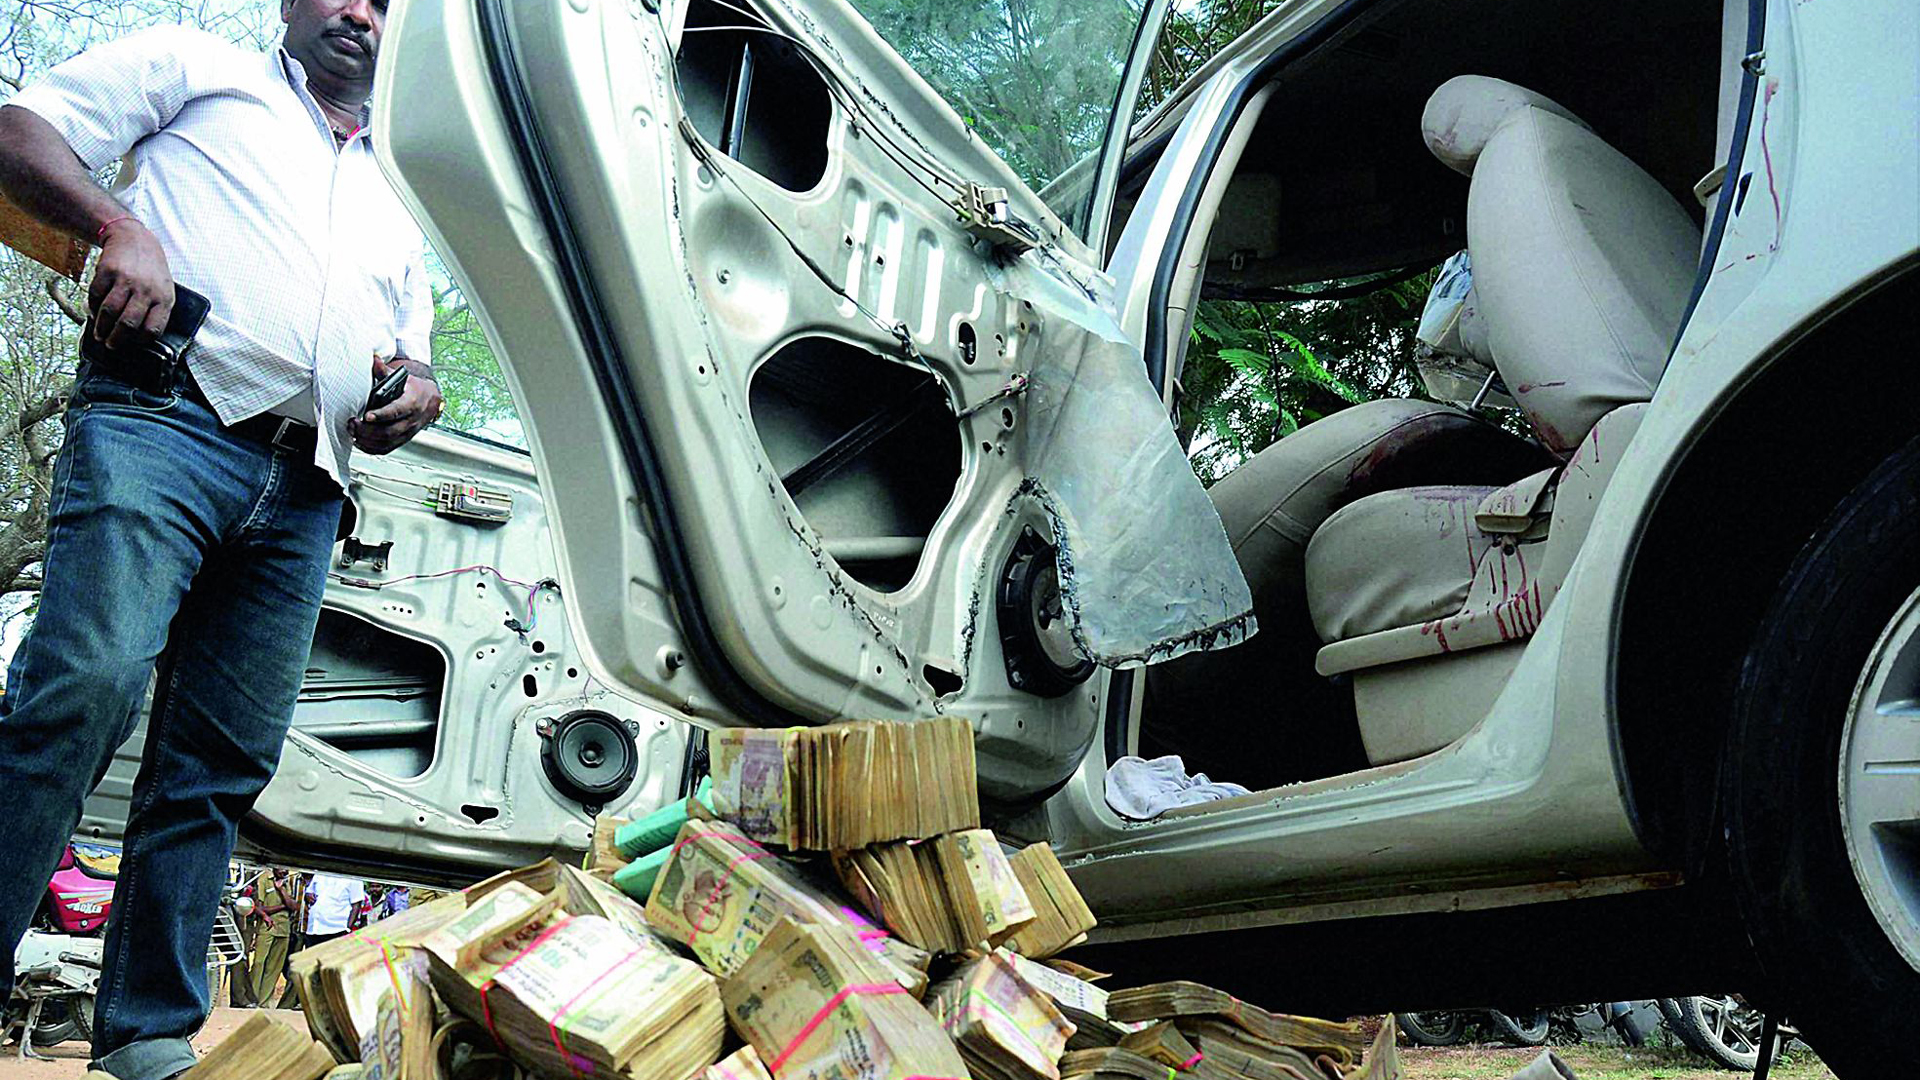 People rush as car spills Rs 2 crore